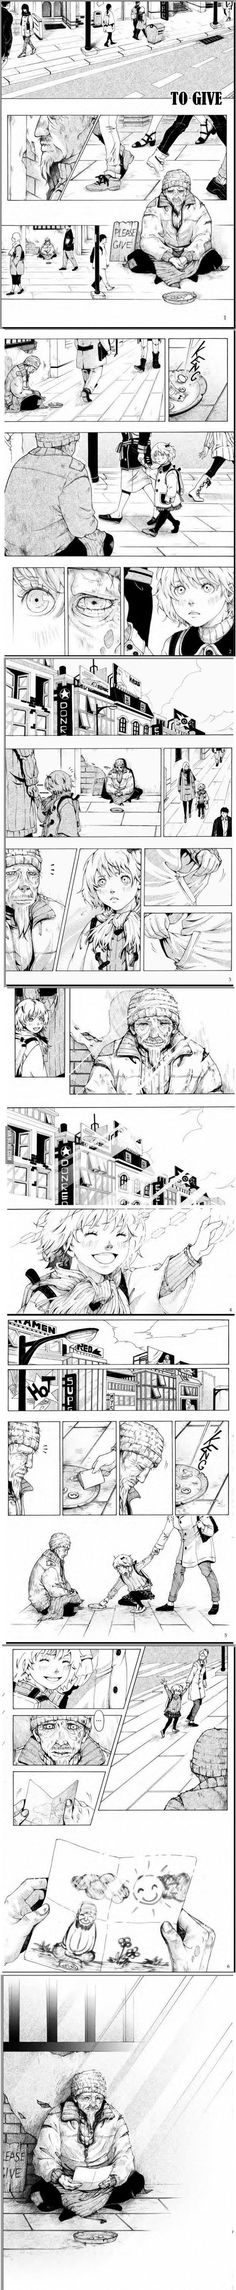 Cute and so sad T.T Manga from unknown writer. (Read from Right to left) http://ibeebz.com